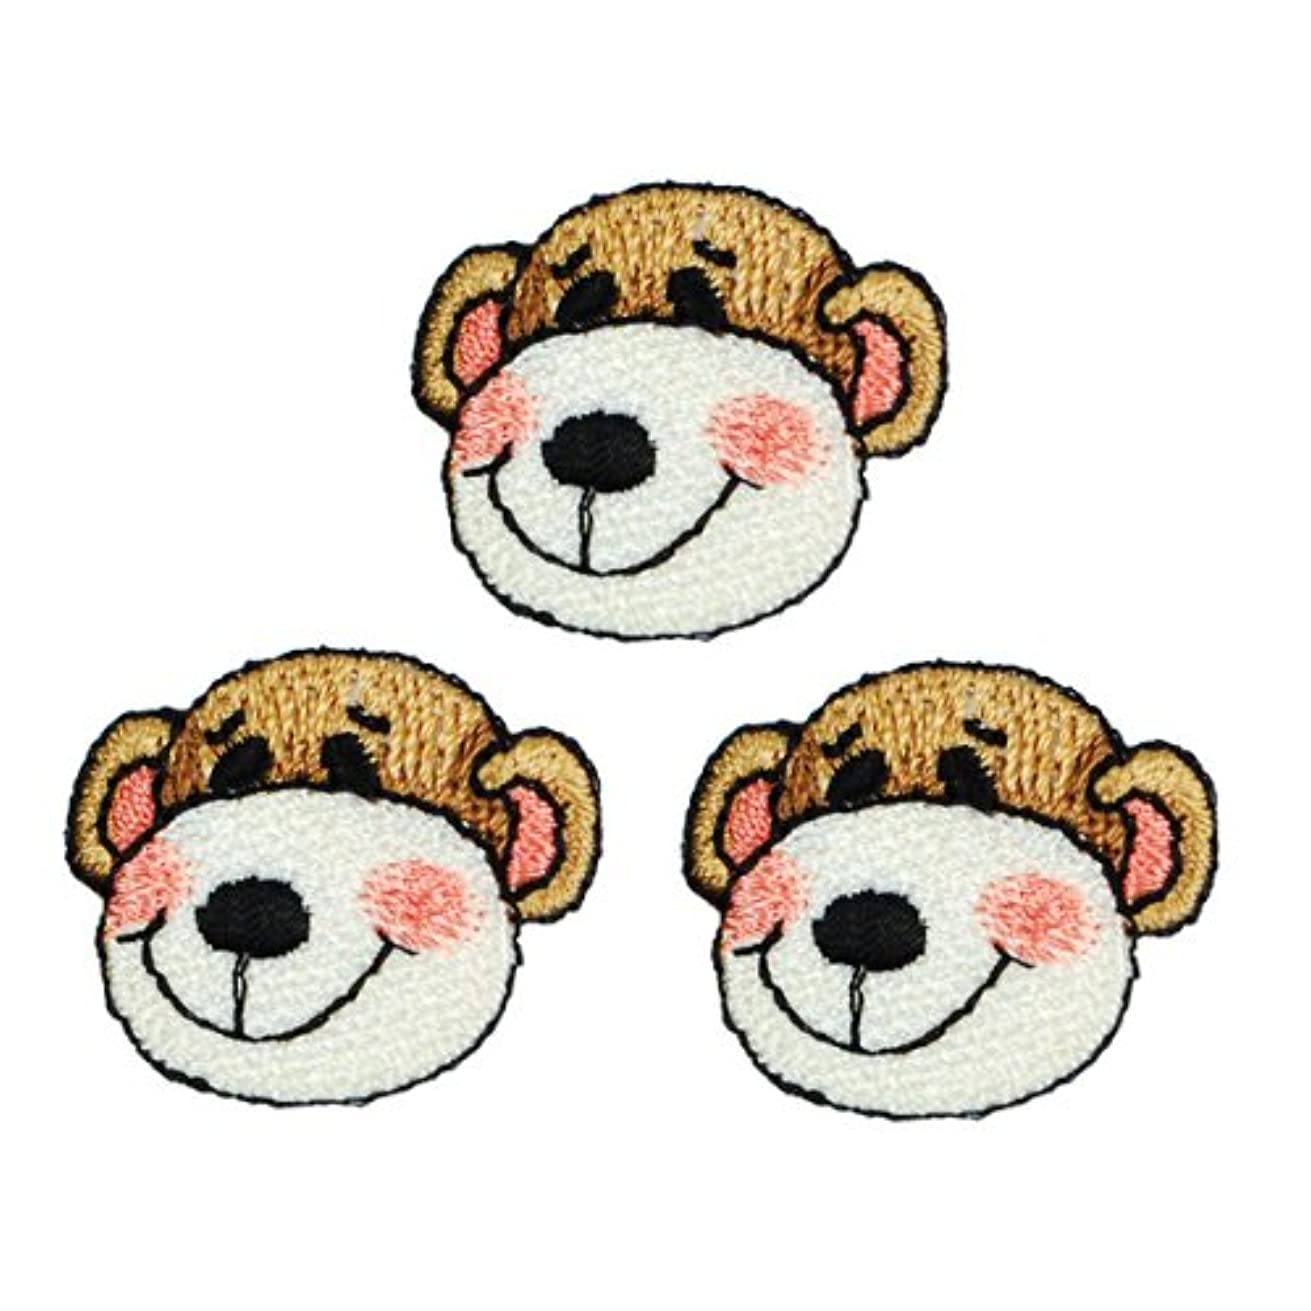 Expo Iron-on Embroidered Applique Patches, BaZooples Max Monkey Head, 3-Pack